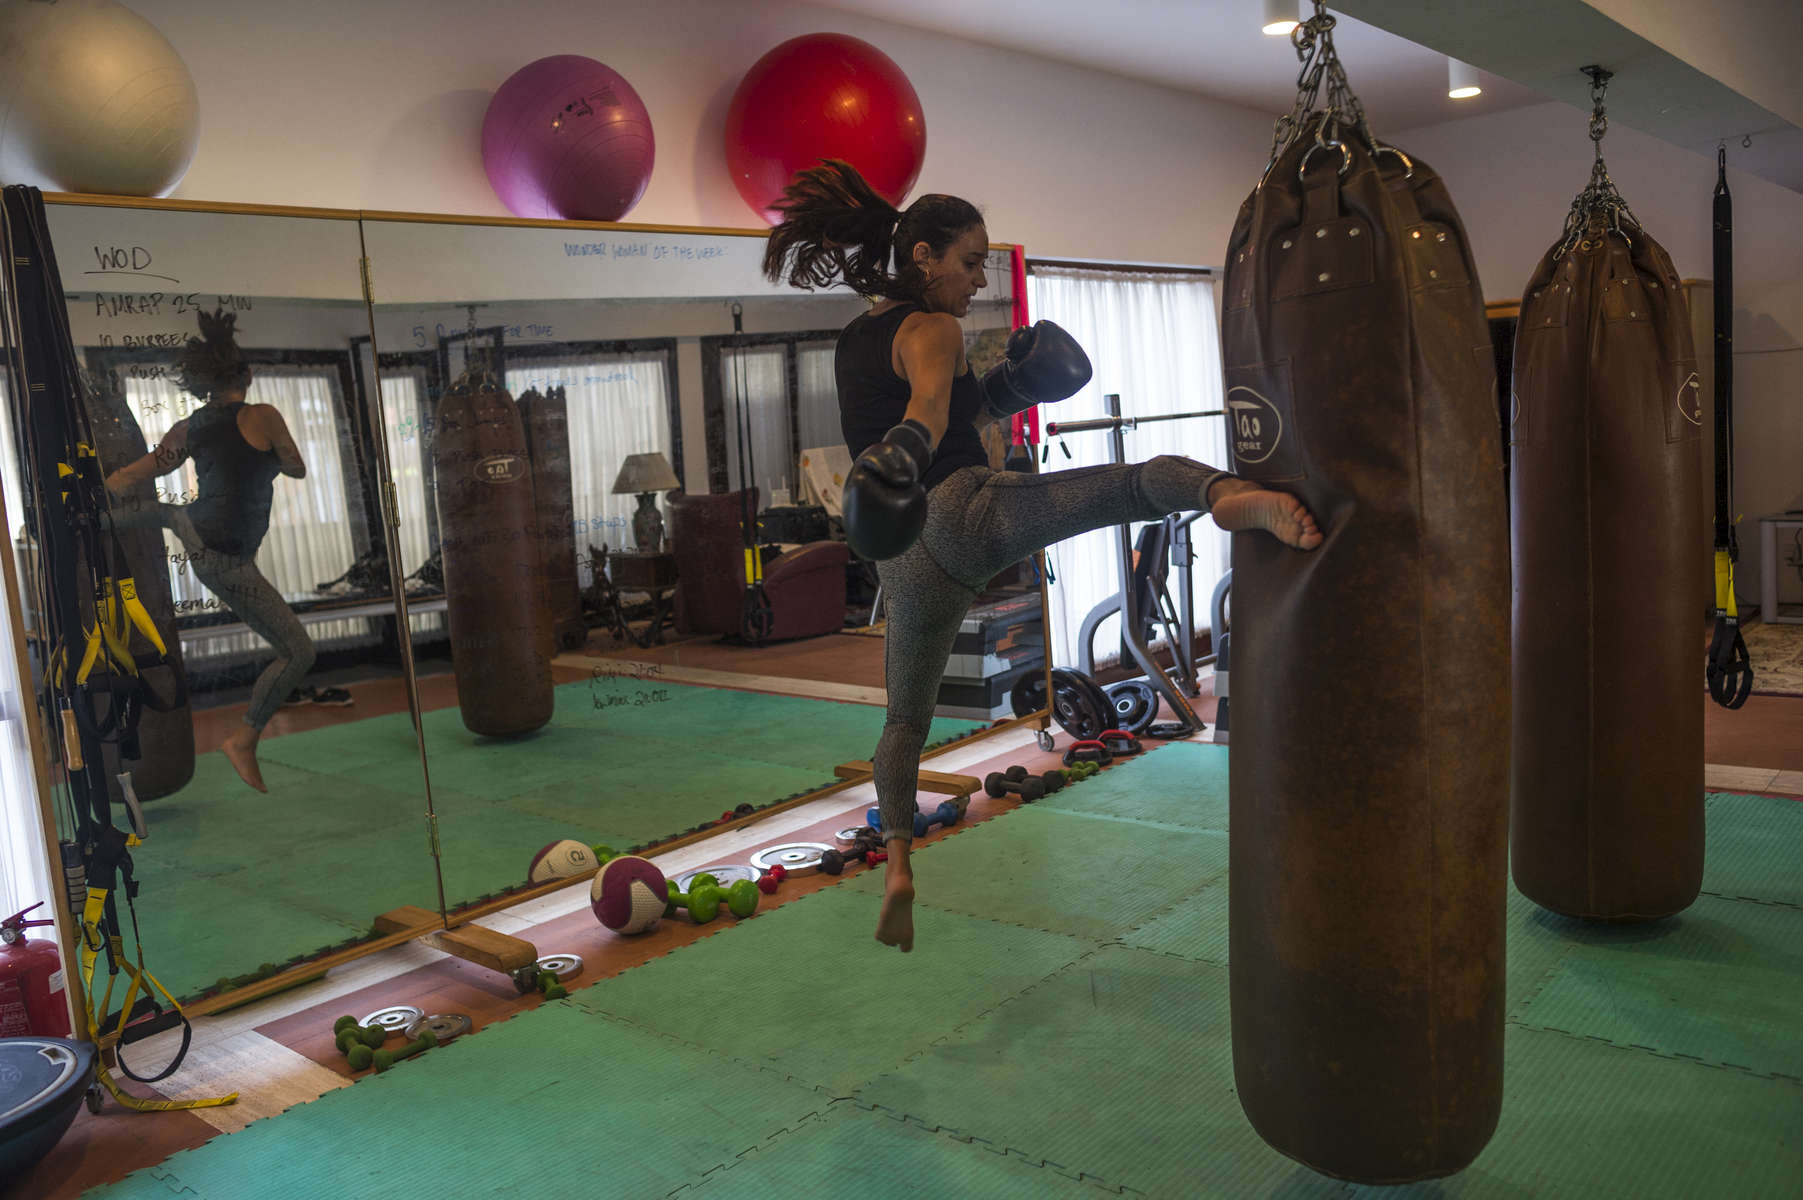 "Saudi women Halal Alhamrani, 38, a kickboxing and boxing instructor and personal trainer trains in her home in Jeddah, Saudi Arabia, December 3, 2014.  Long discouraged from sports, especially those that clerics call masculine, urban women are drawn to clubs and home gyms where they can exercise away from men. Halah Alhamrani, 39, teaches kickboxing at her home in Jeddah; she's a physical trainer, a career that women are taking up despite some hostile response. ""Not just men,"" says another Jeddah trainer. ""A lot of closed-minded women see what we're doing as a disgrace."""